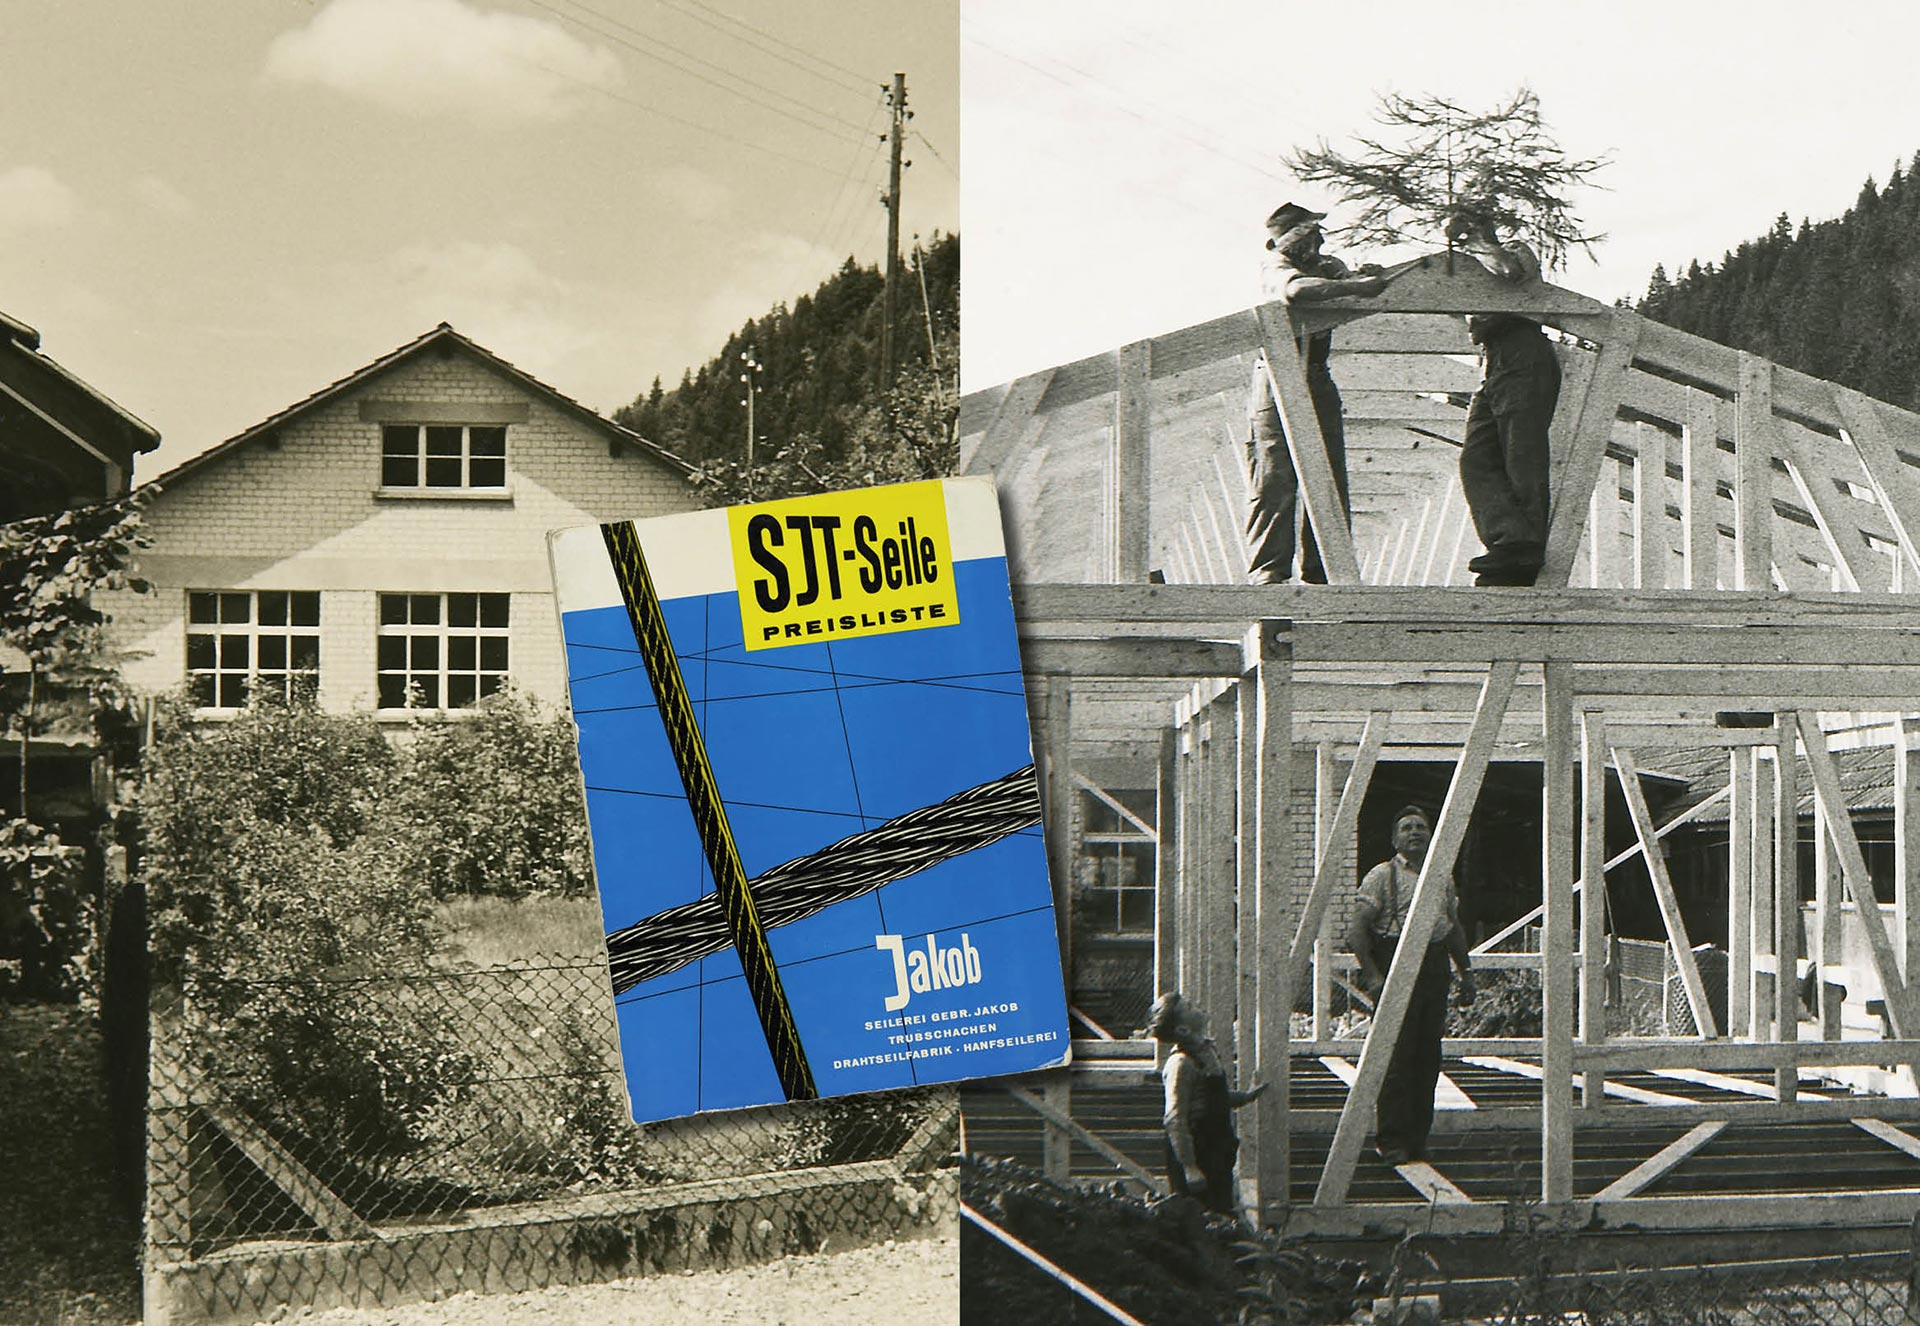 Images of the new office building, the topping-out ceremony and the cover of a price list from 1960